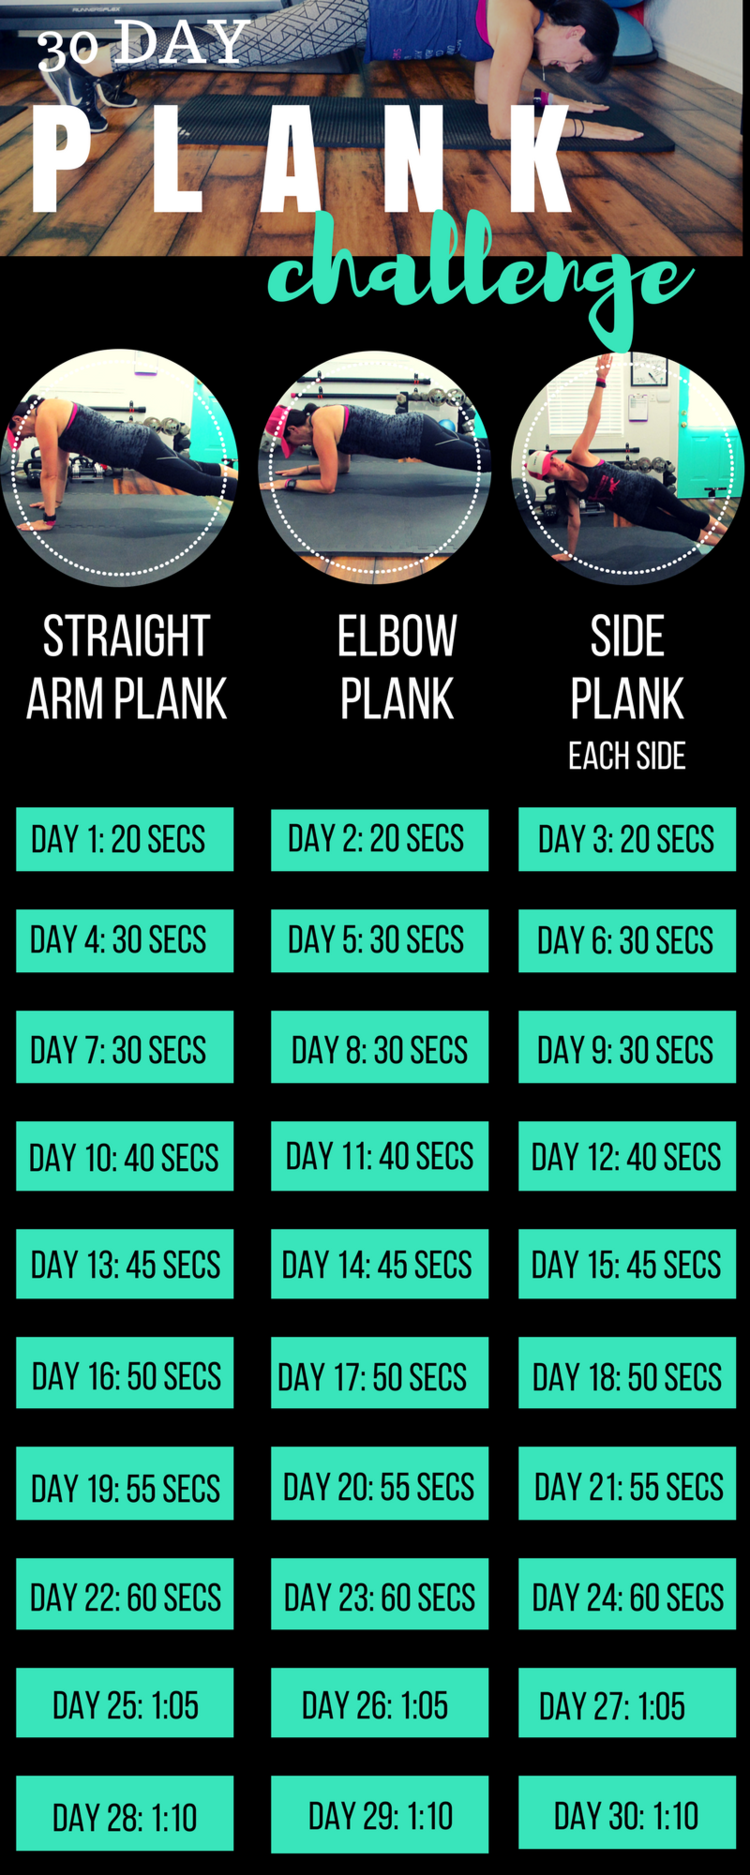 #challenge #genders #fitness #plank #day #lea30 DAY PLANK CHALLENGE 30 DAY PLANK CHALLENGE — Lea Gen...